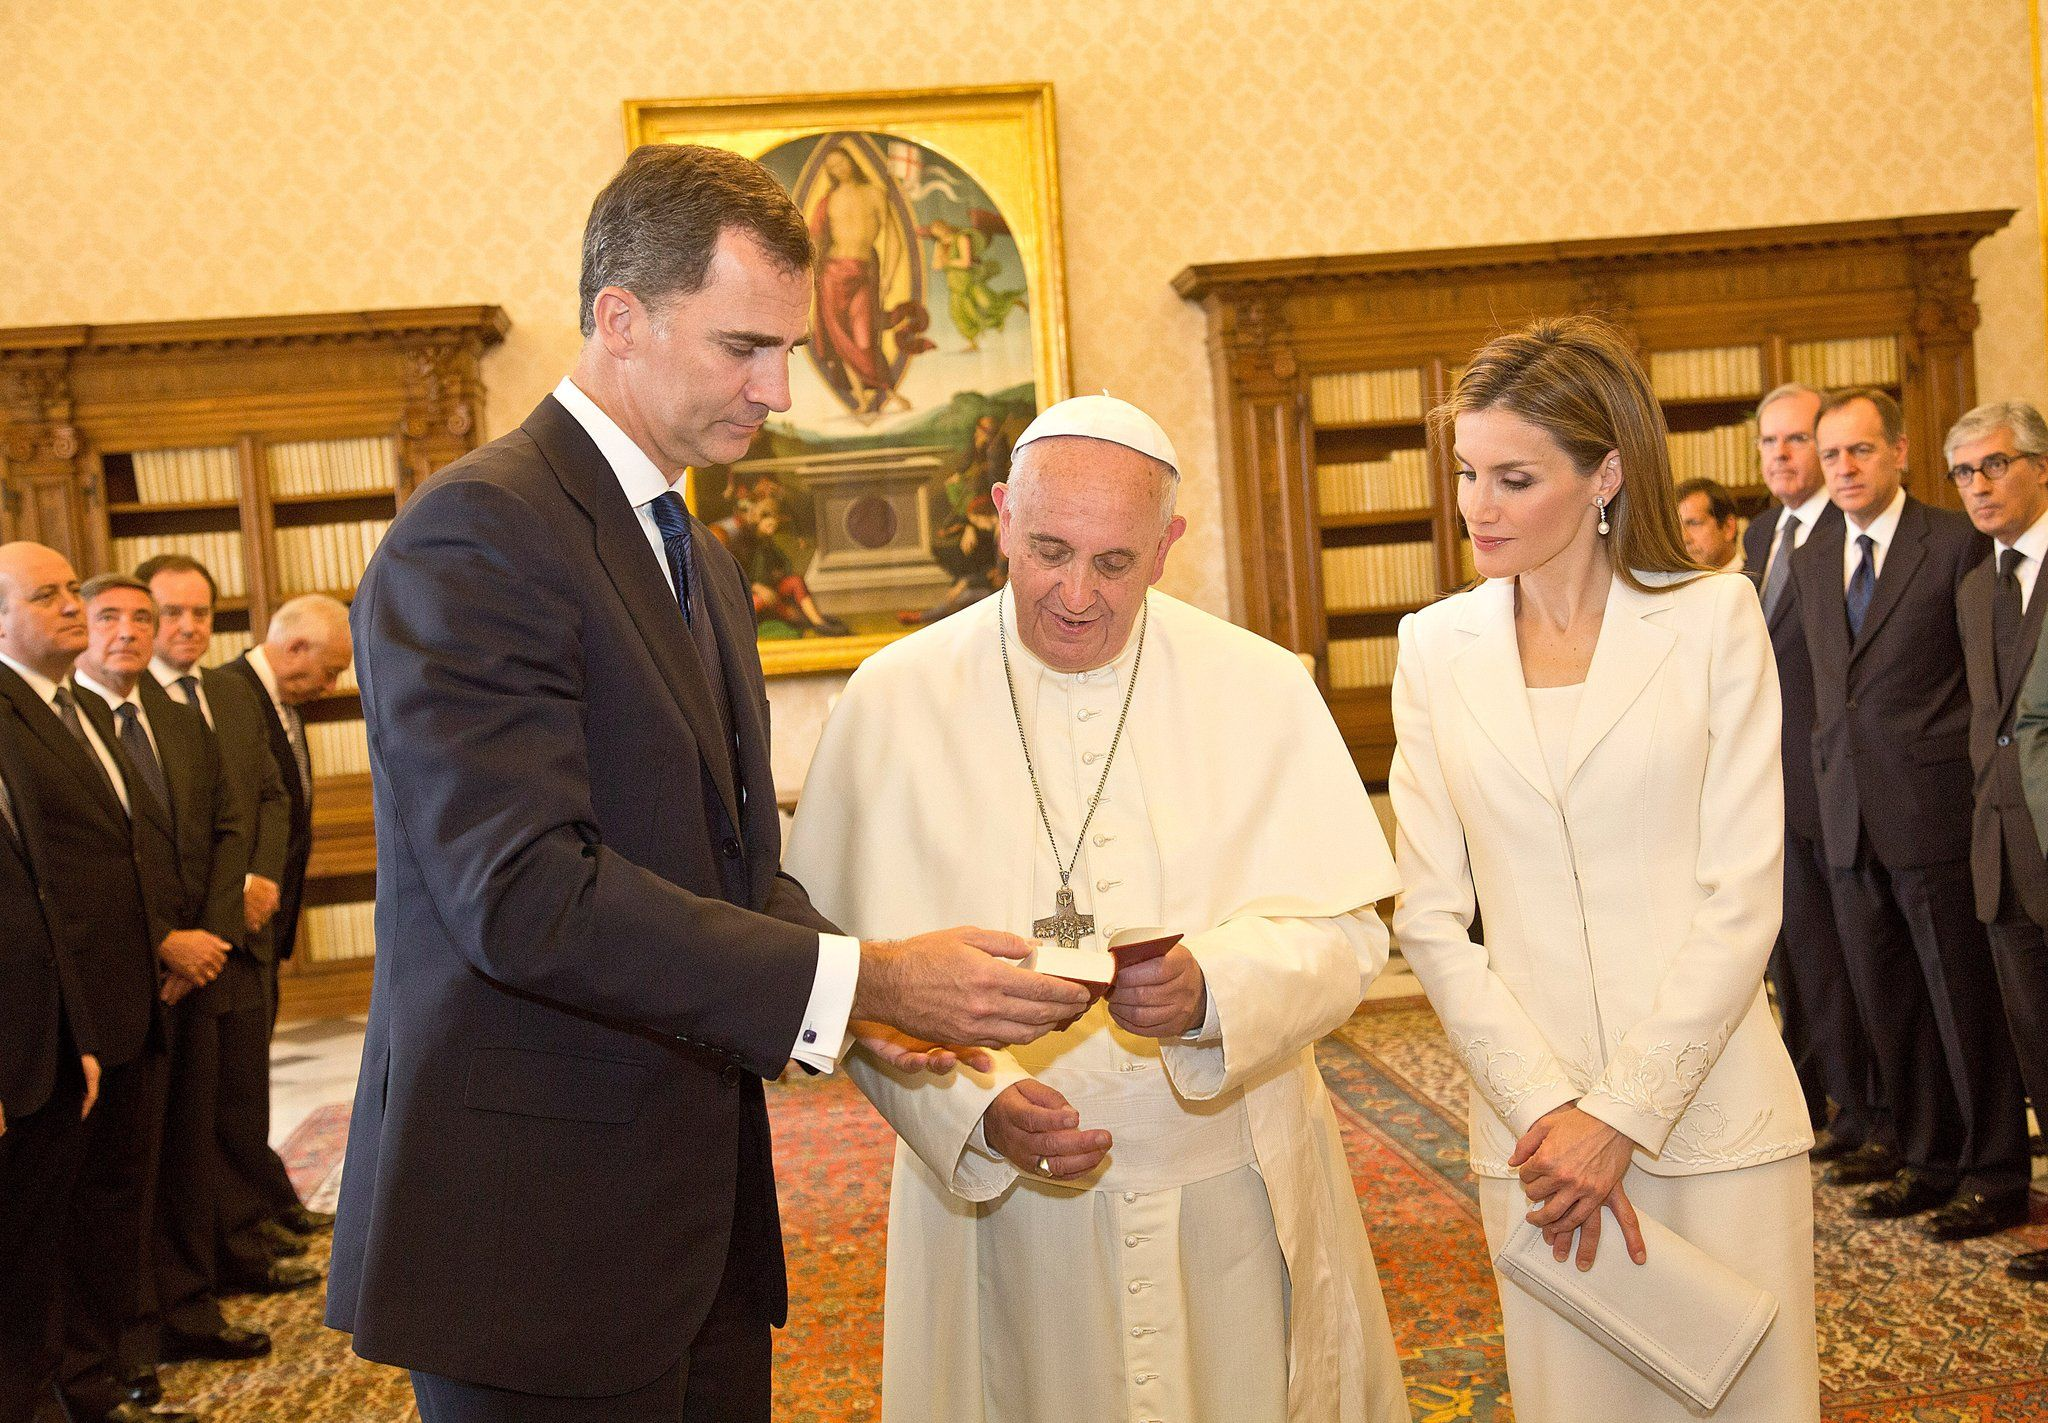 In June 2014, Letizia and Felipe met with Pope Francis at the Vatican.